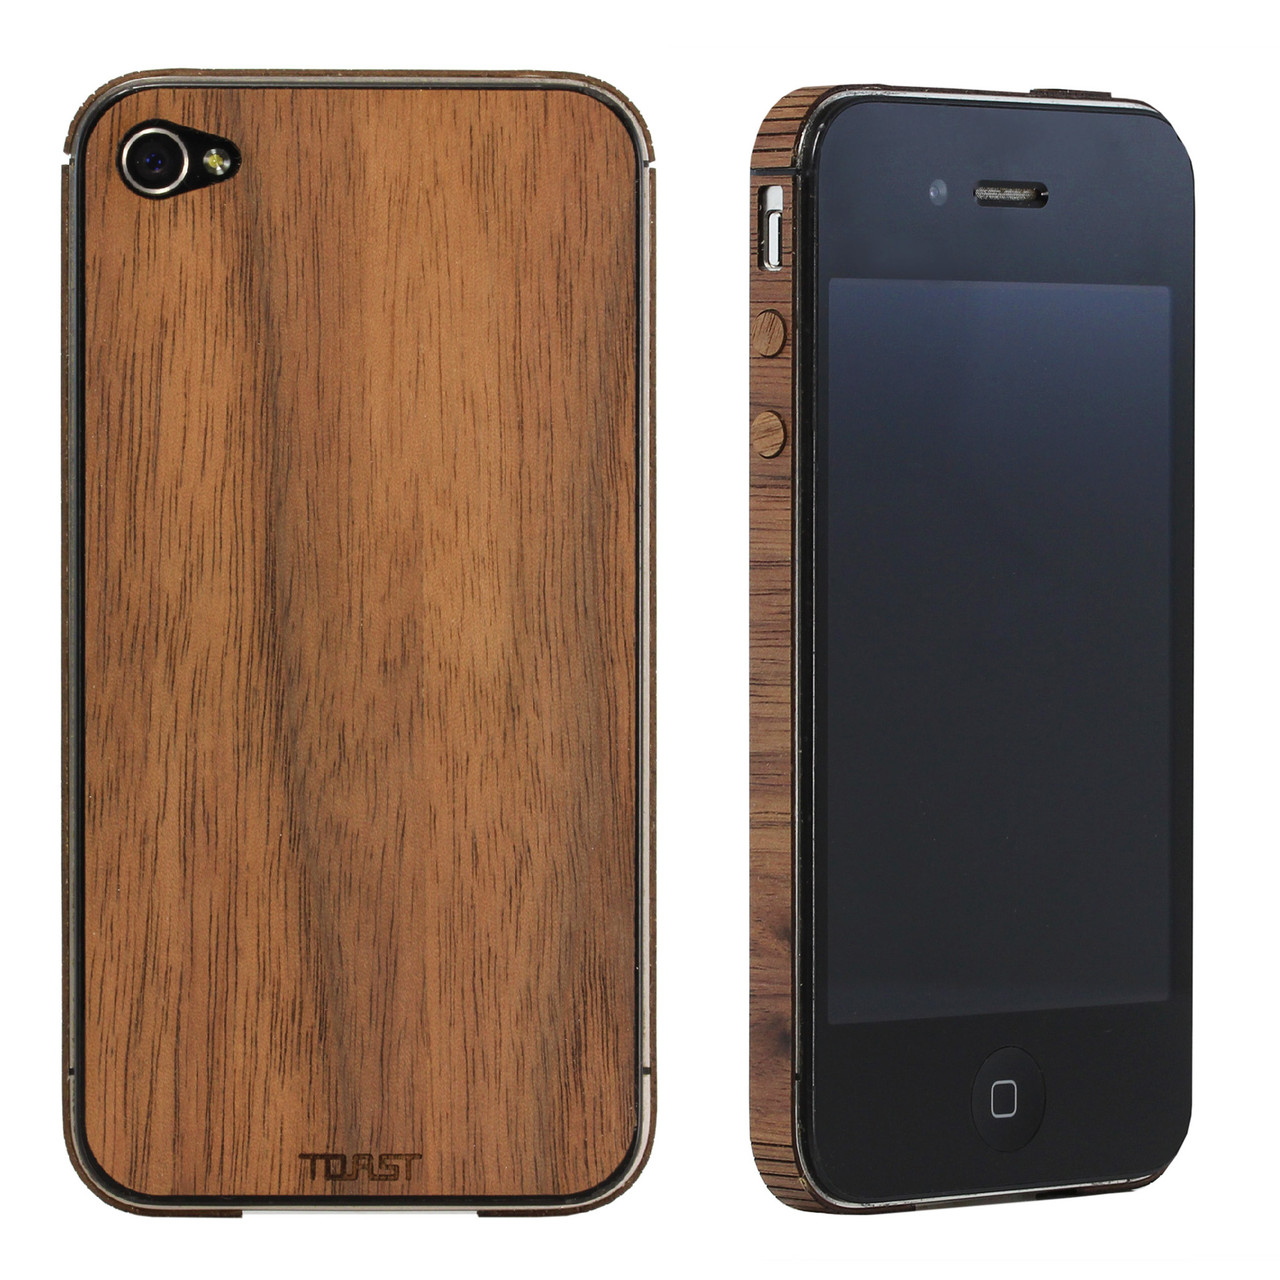 watch d84ab 357d2 iPhone 5s / 5C wood cover